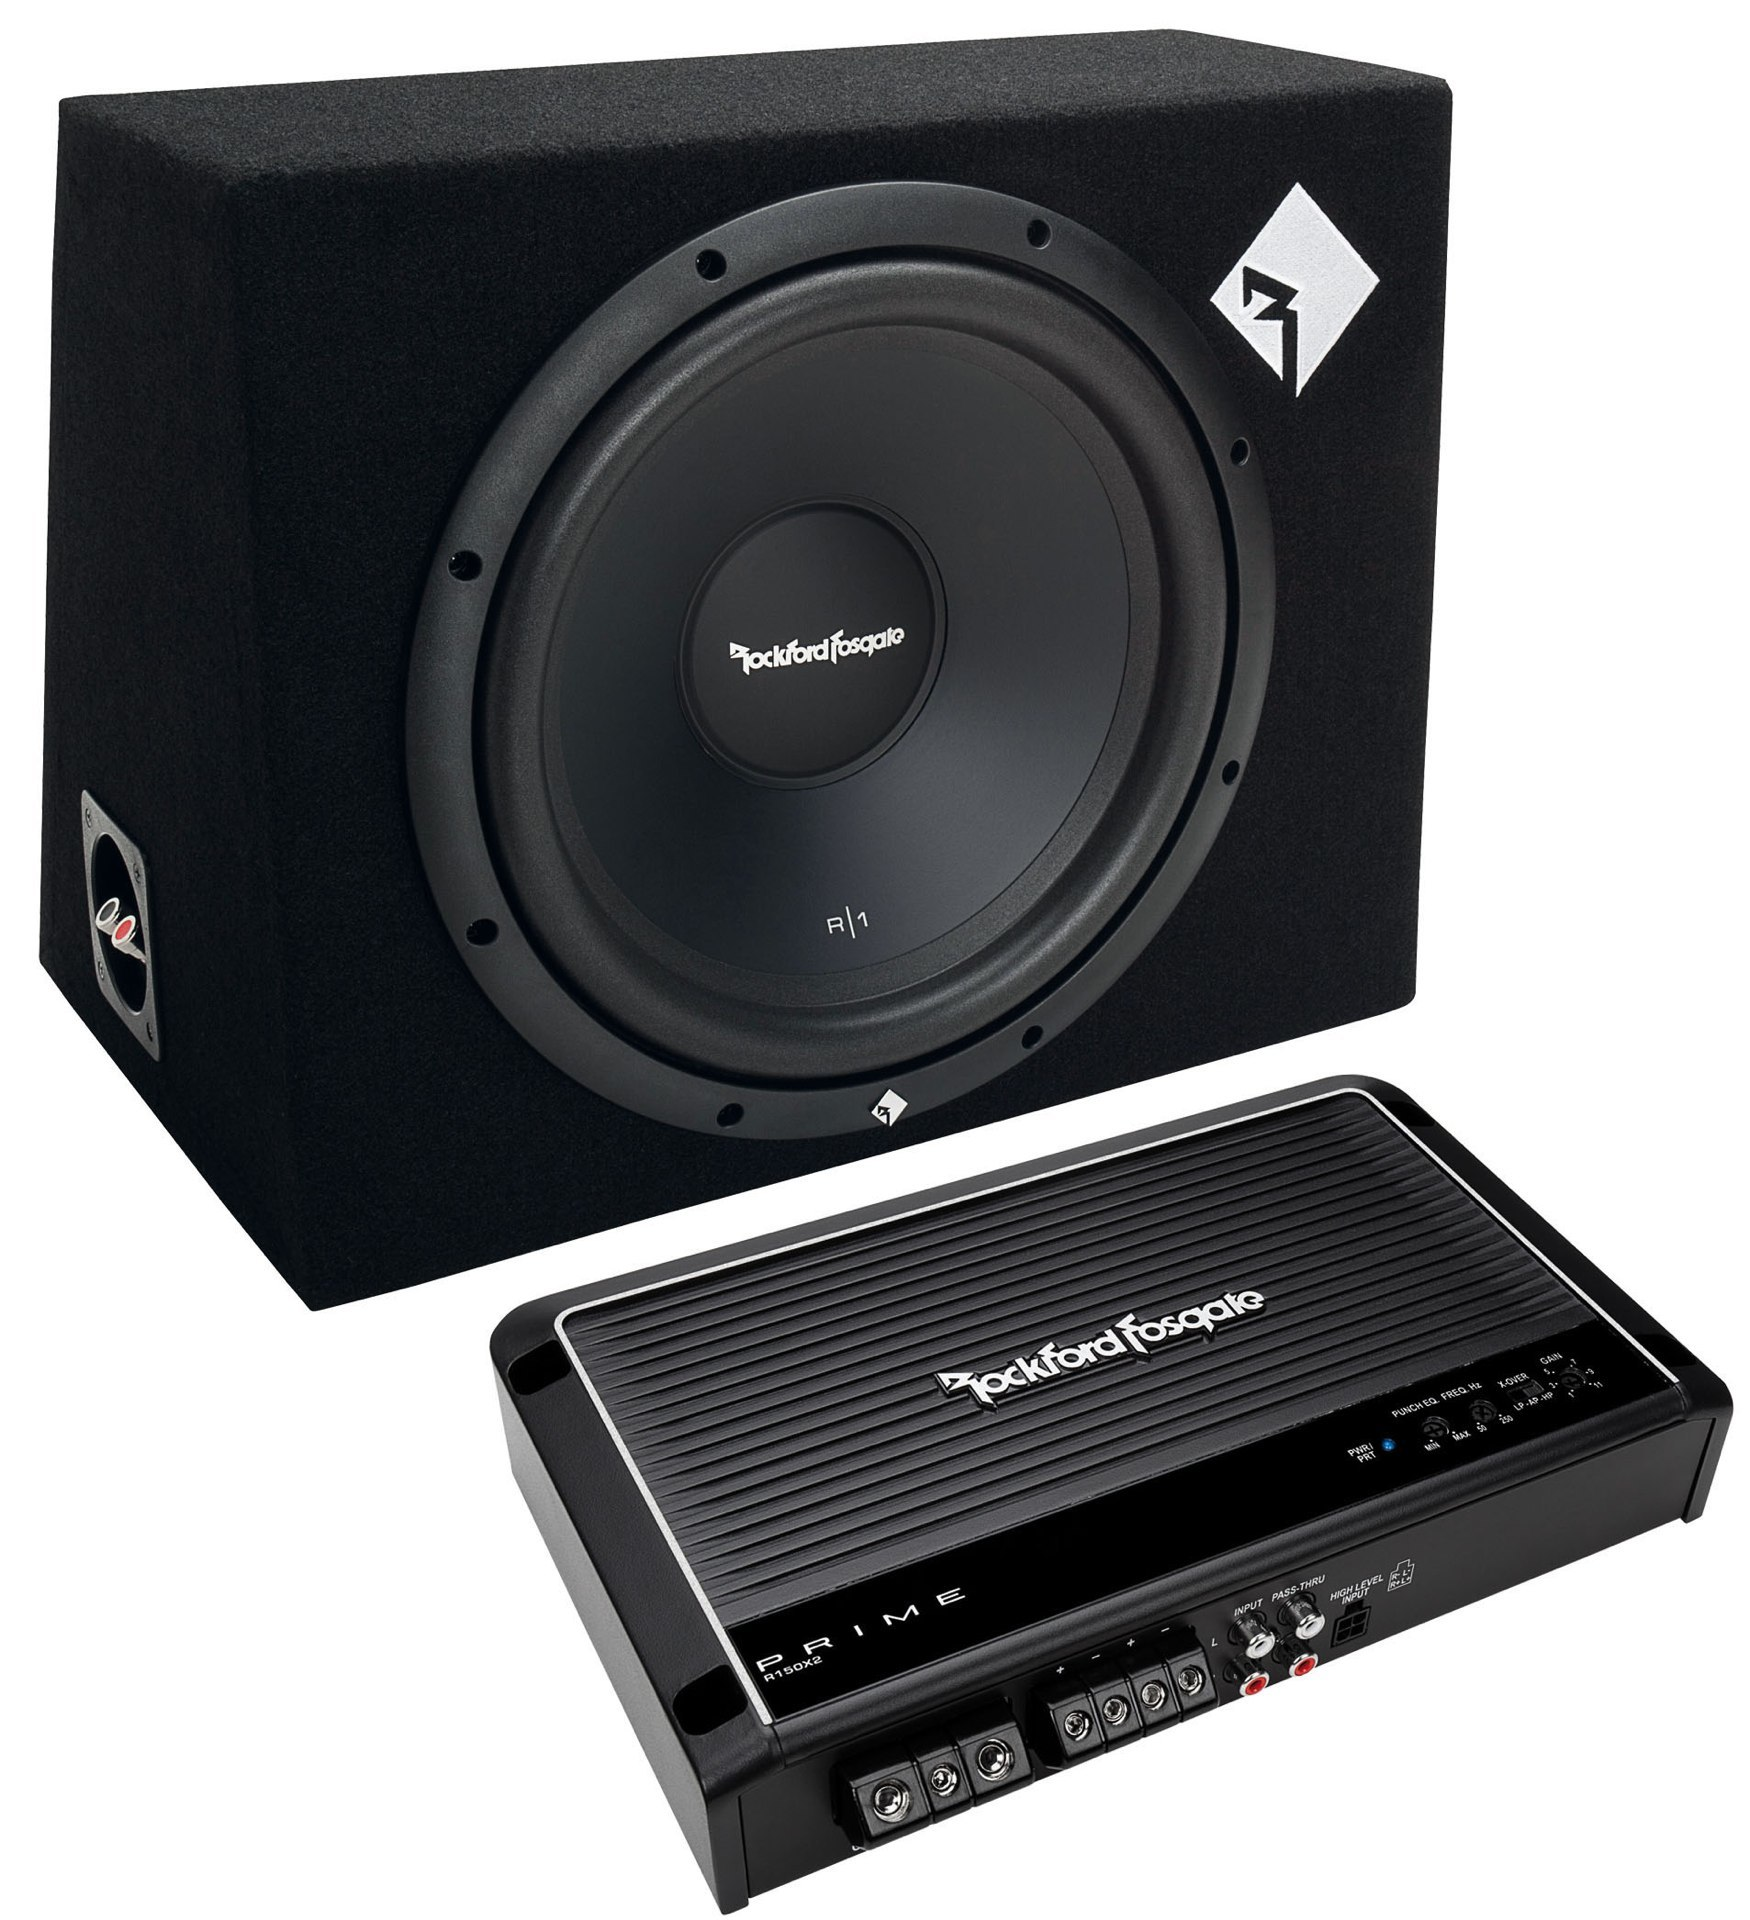 rockford fosgate car hifi set ssk 300 mkii. Black Bedroom Furniture Sets. Home Design Ideas